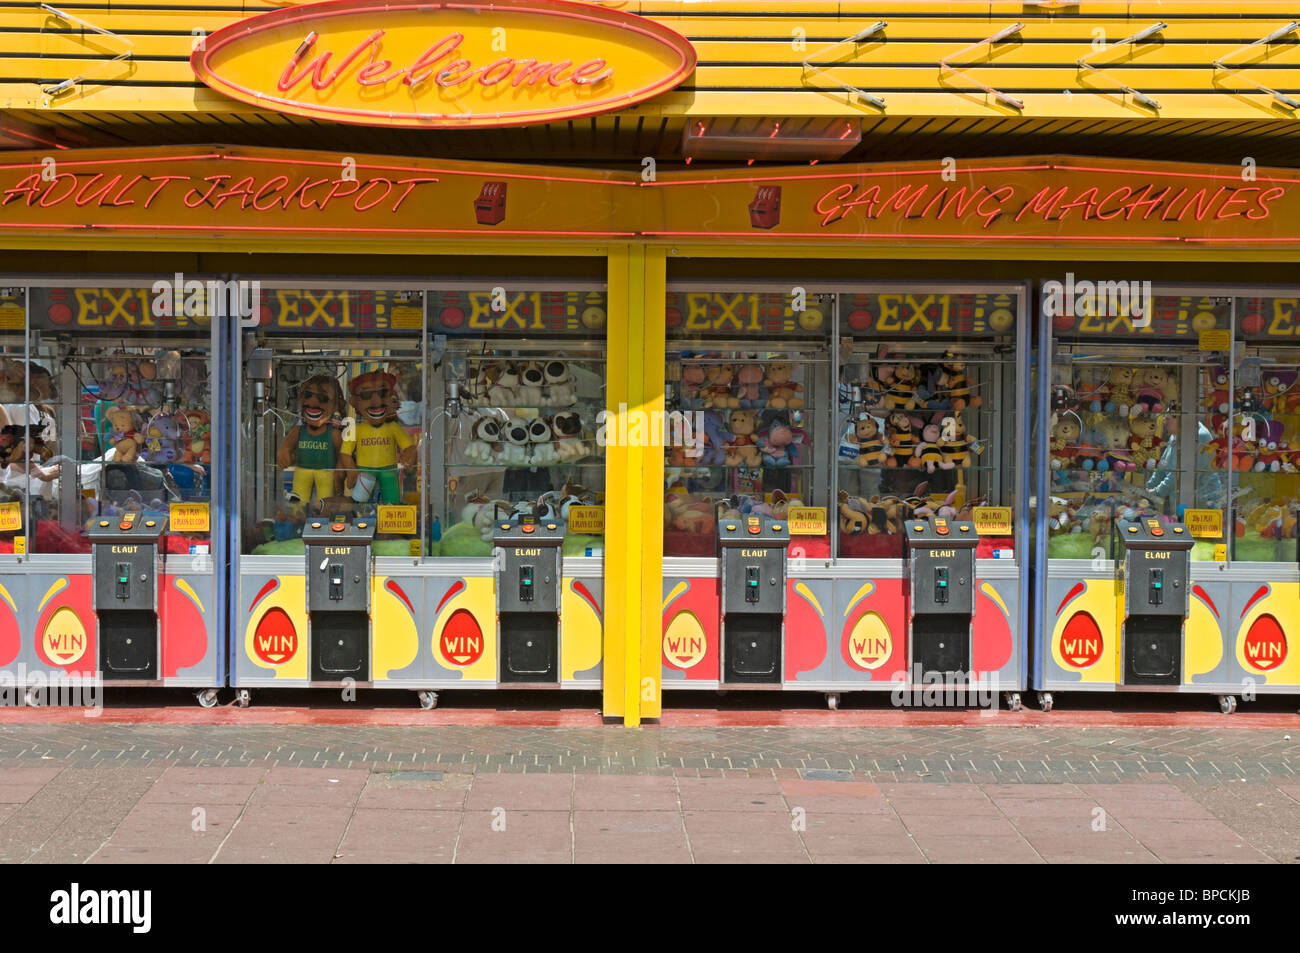 Gaming machines on the pavement, Clacton on Sea, United Kingdom Stock Photo